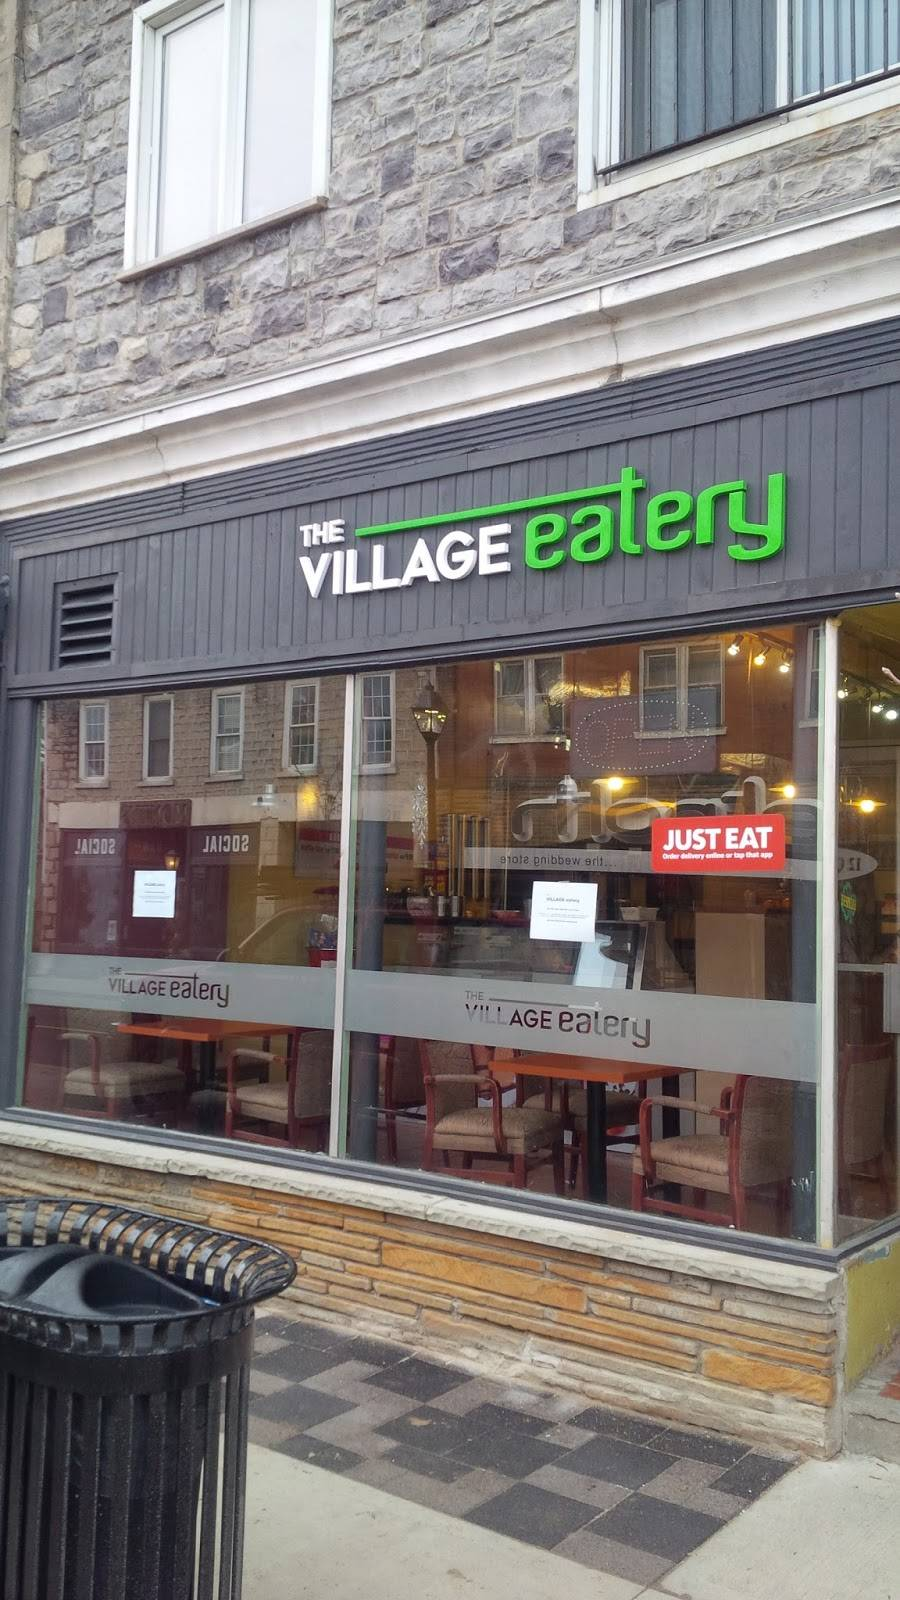 The Village Eatery | restaurant | 12 Queen St E, Cambridge, ON N3C 2A8, Canada | 5192601117 OR +1 519-260-1117